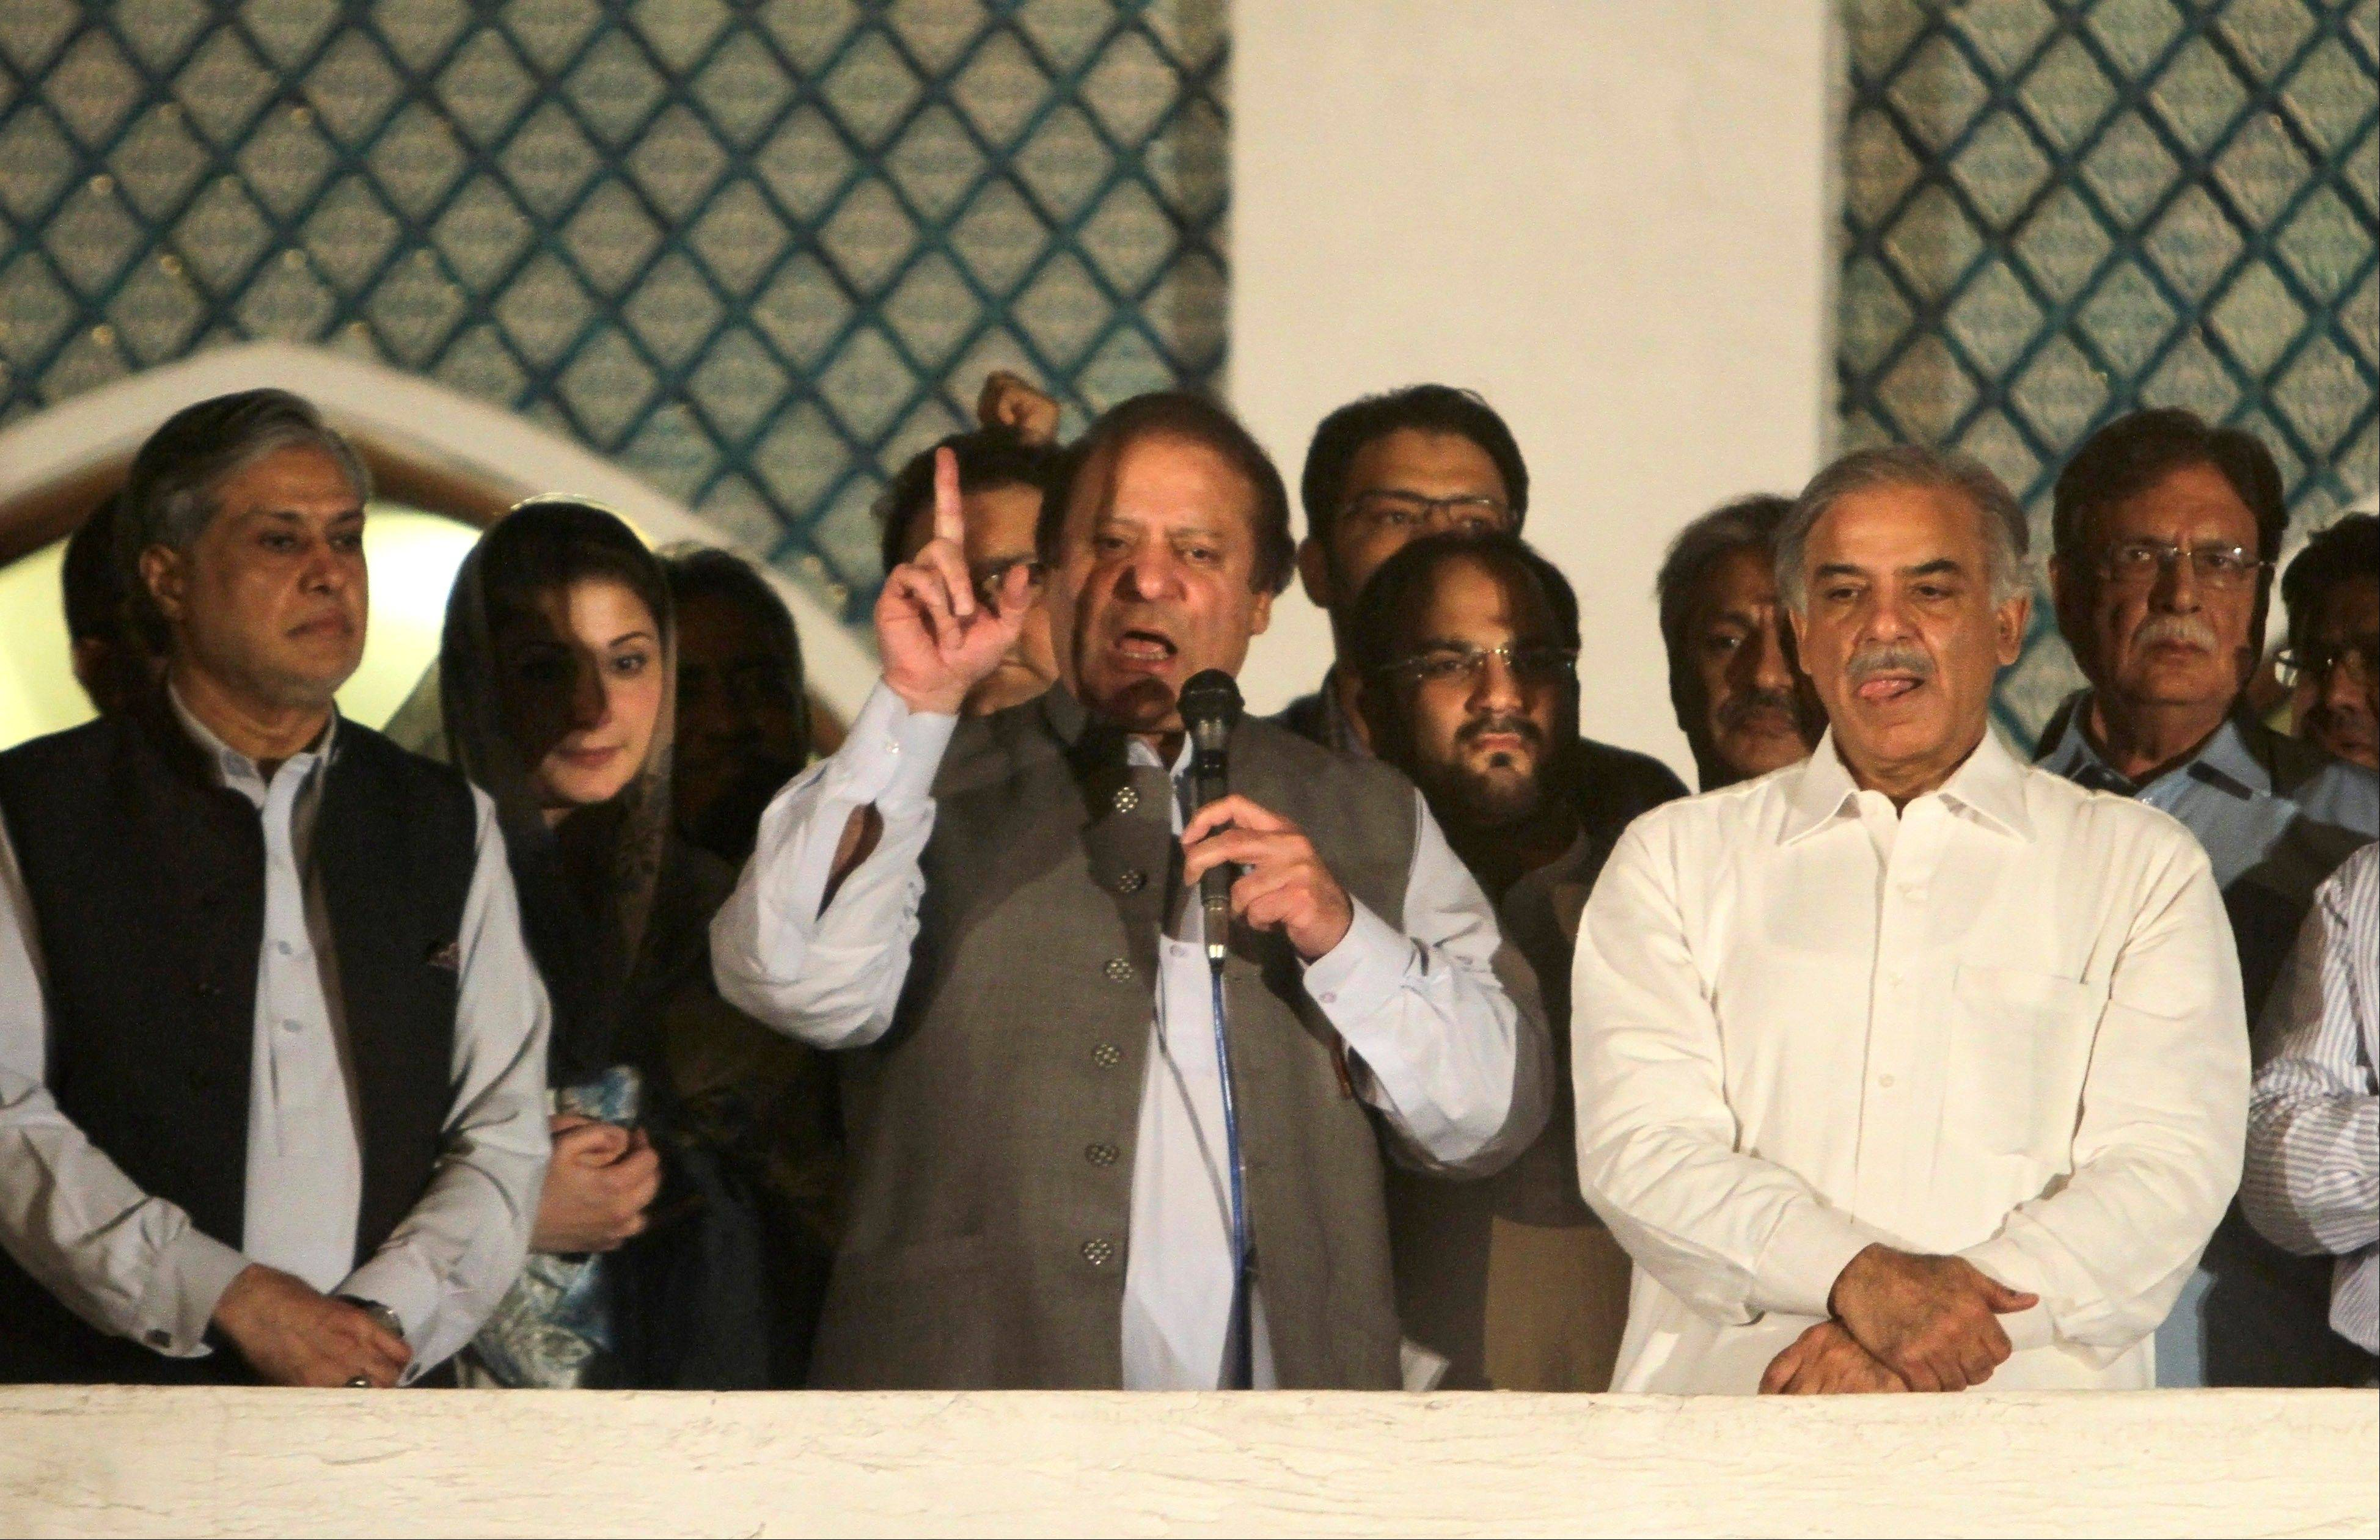 Former Prime Minister and leader of the Pakistan Muslim League-N party Nawaz Sharif, center, was headed for victory Sunday in a landmark election and the chance to run the country for a record third time.